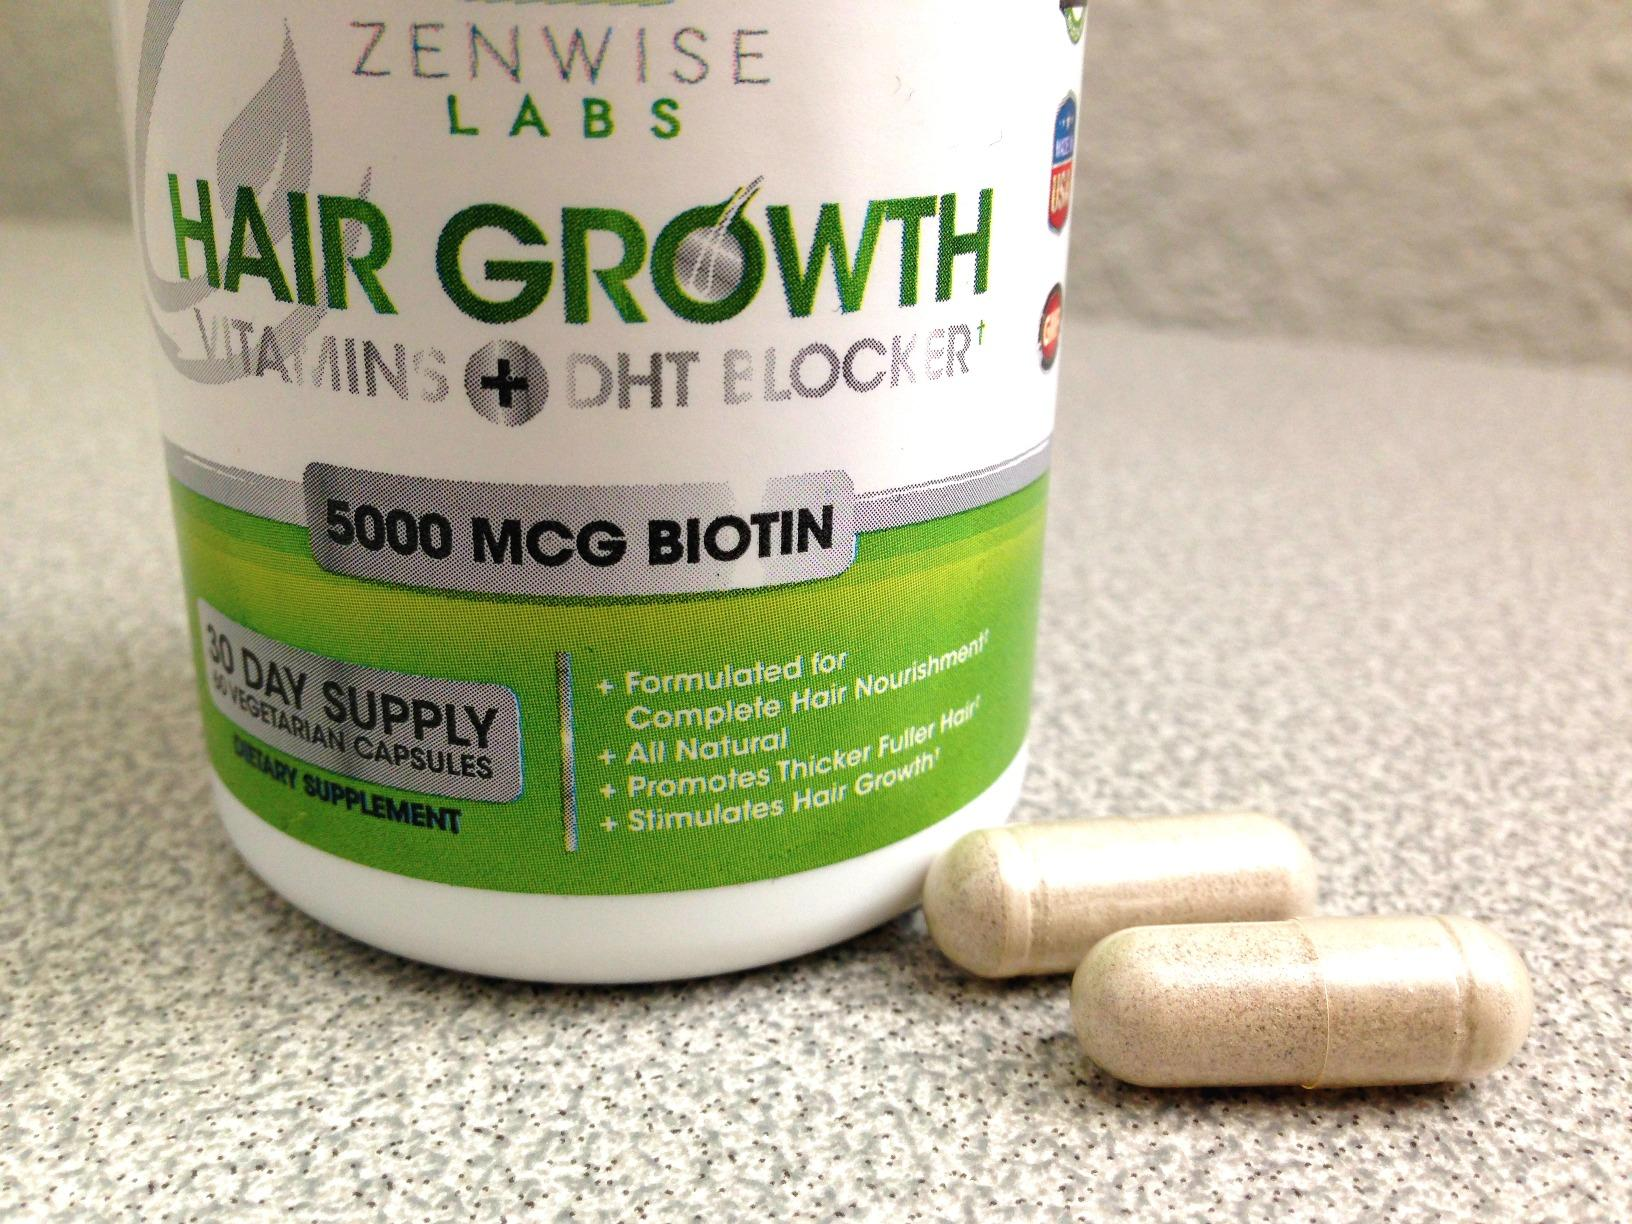 Hair Growth Vitamins Supplement - 5000 mcg Biotin & DHT Blocker Hair Loss